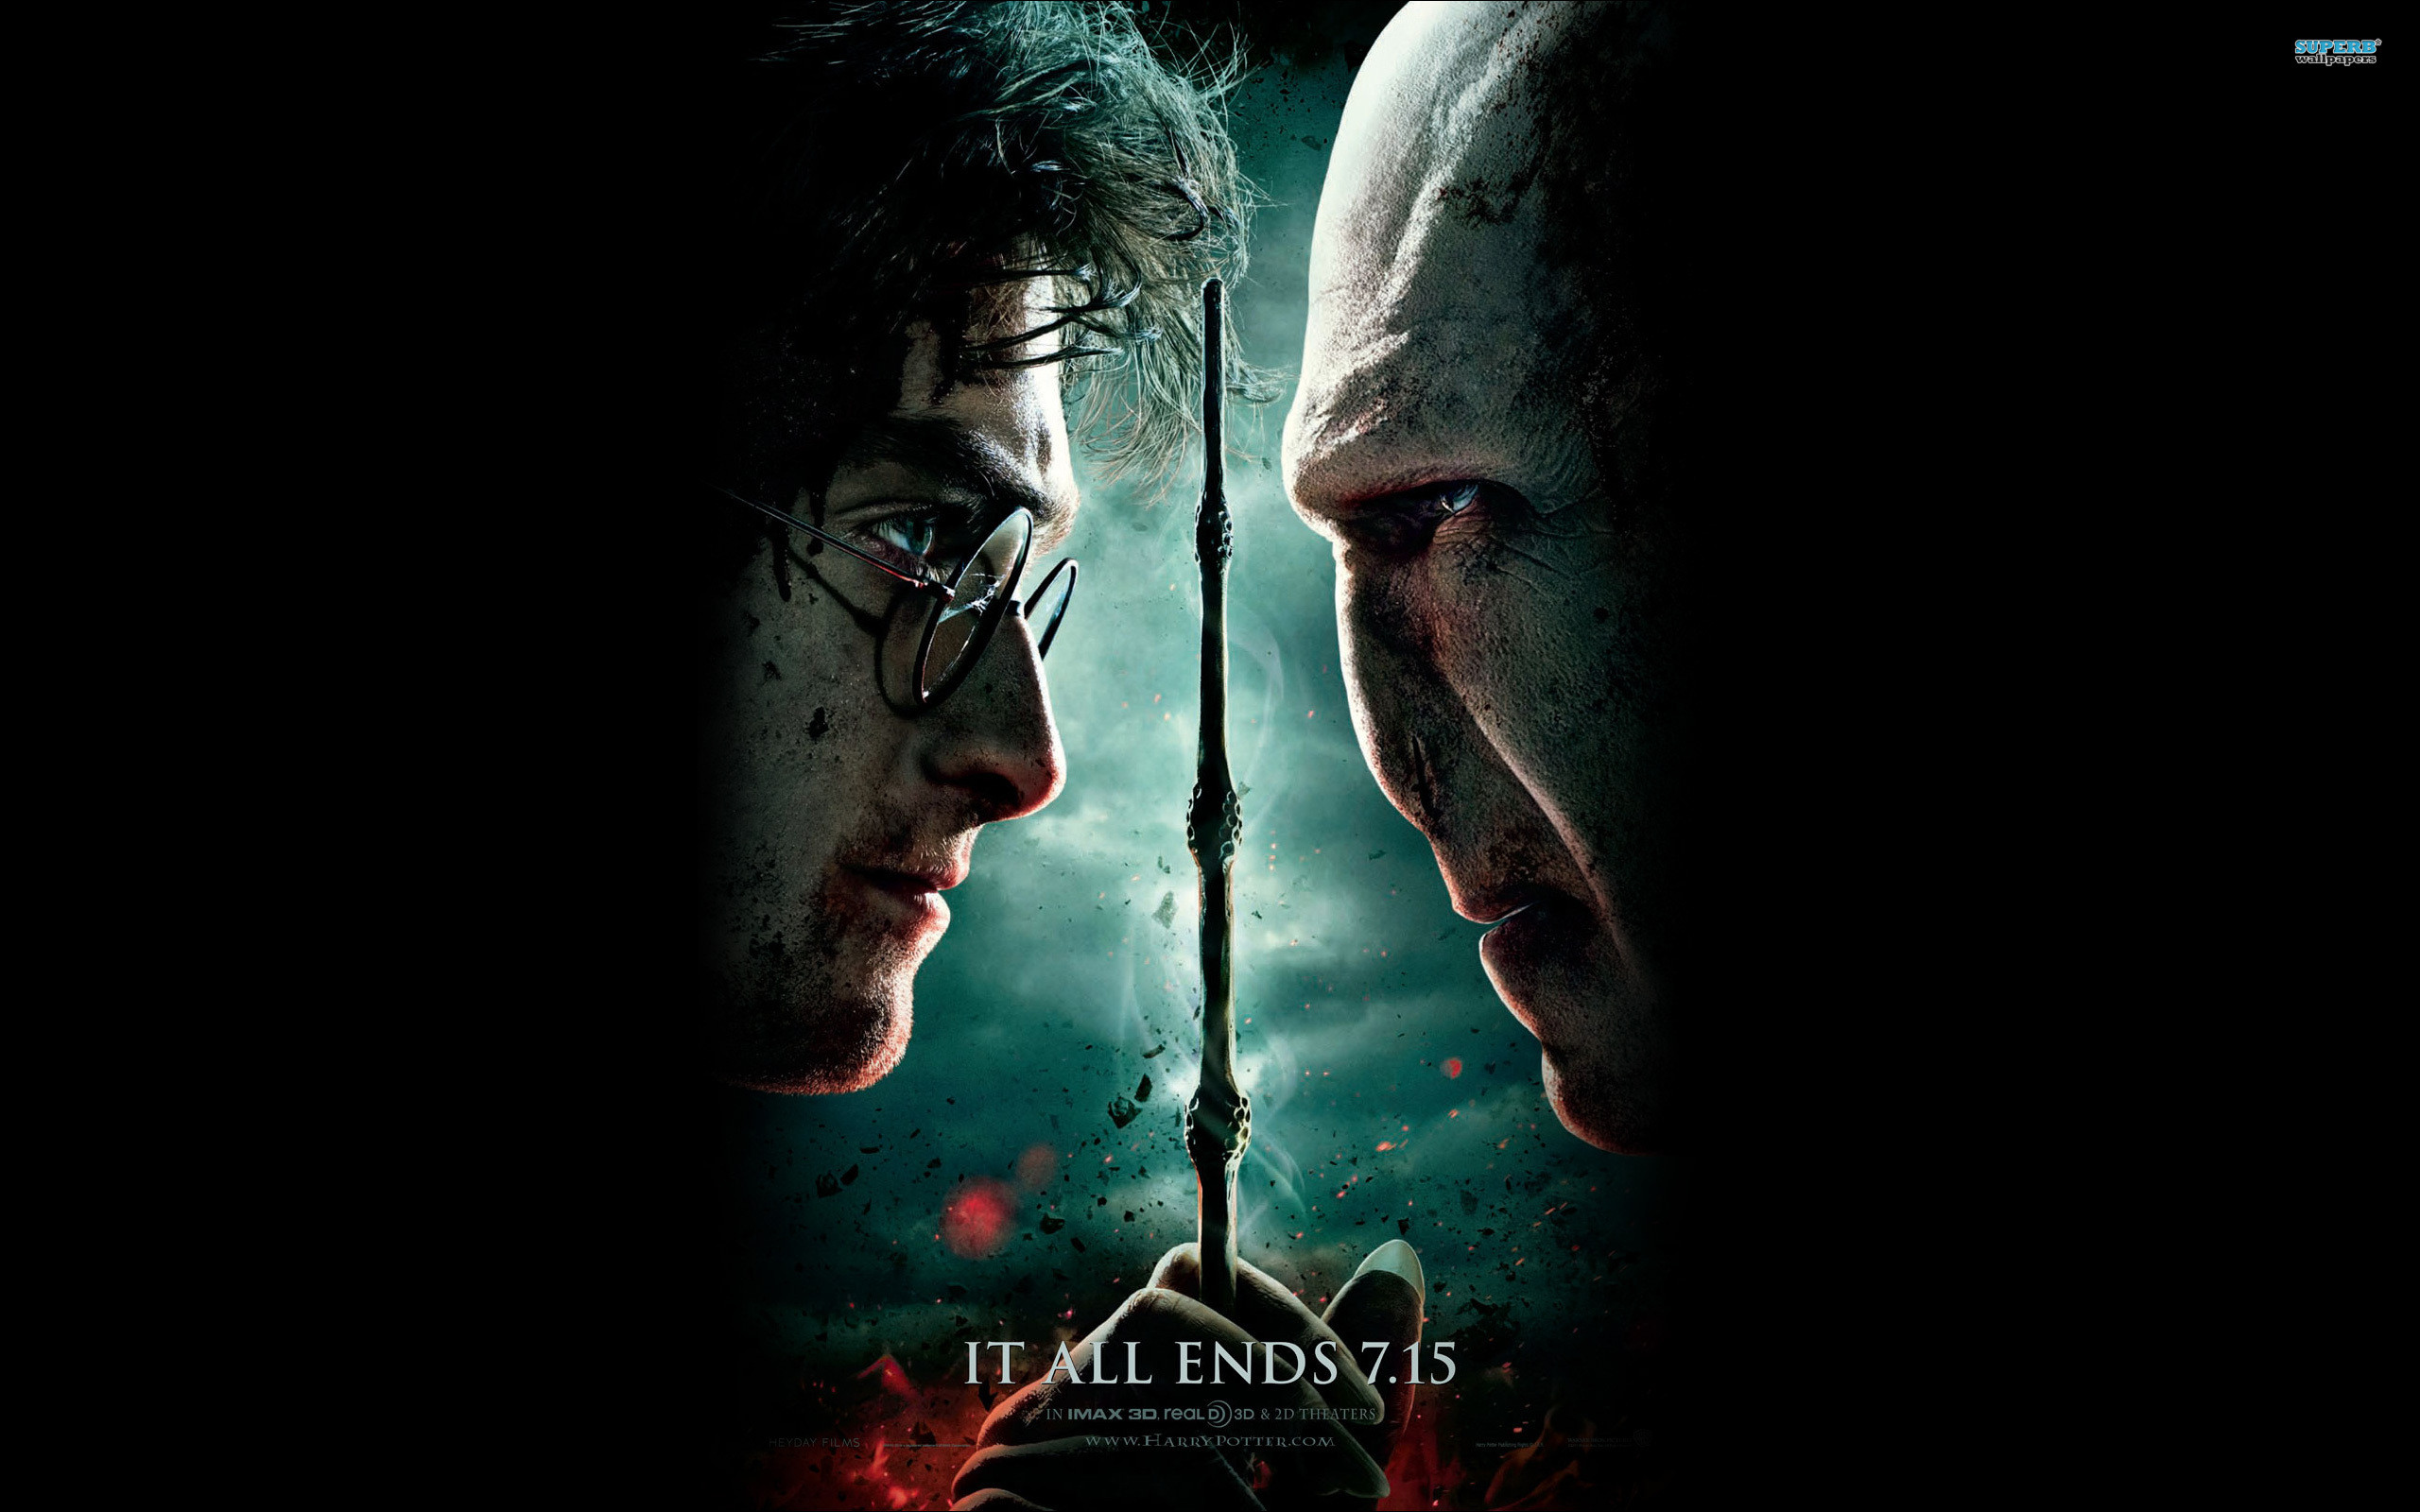 Harry Potter And The Deathly Hallows Part 2 Wallpapers – Wallpaper .